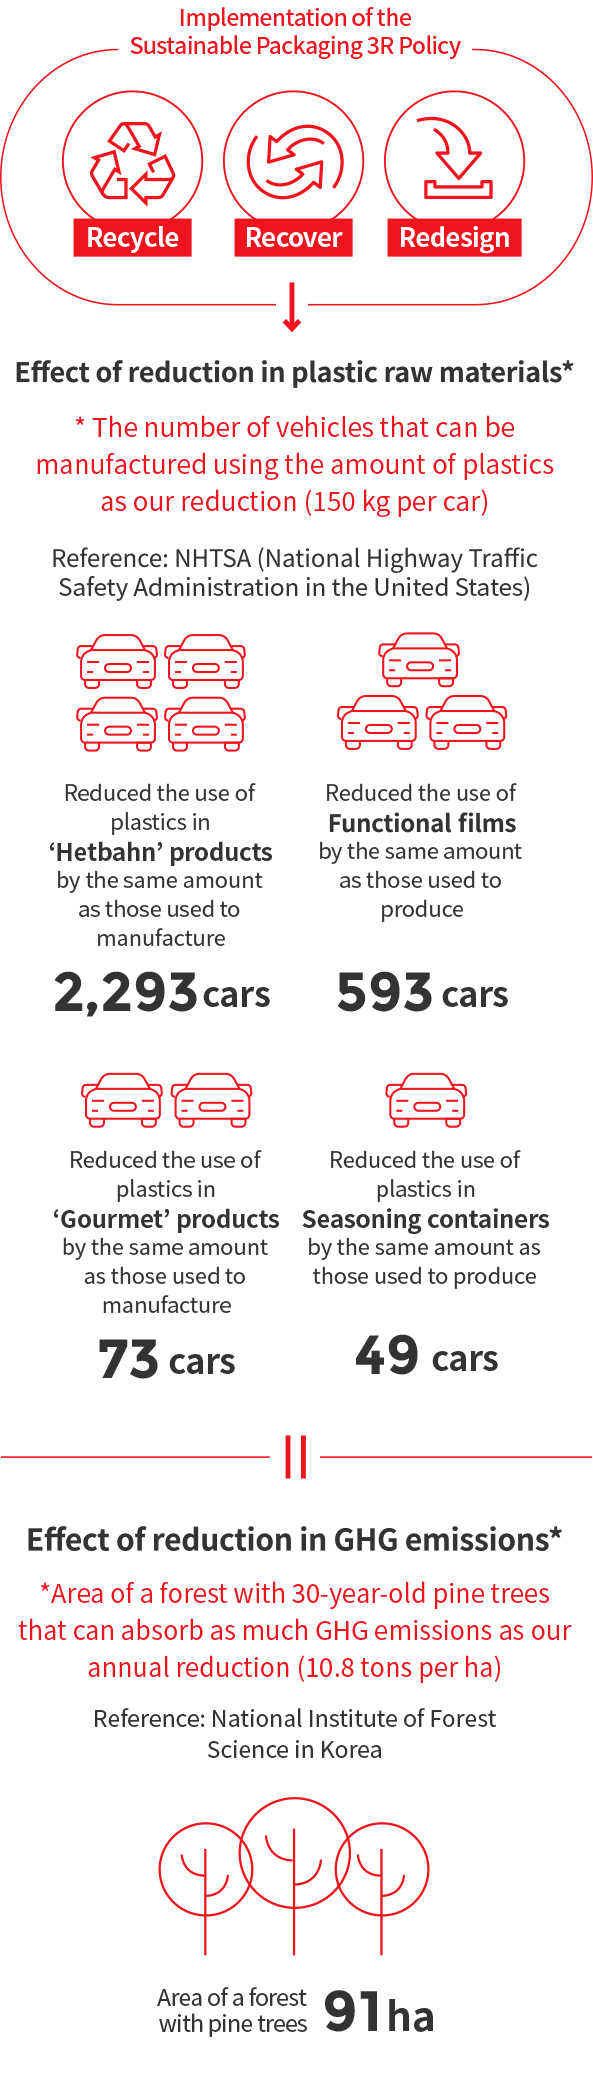 Implementation of the Sustainable Packaging 3R Policy(Recycle, Recover, Redesign) > Effect of reduction in plastic raw materials*The number of vehicles that can be manufactured using the amount of plastics as our reduction (150 kg per car), Reference: NHTSA (National Highway Traffic Safety Administration in the United States) > Reduced the use of plastics in 'Hetbahn' products by the same amount as those used to manufacture 2,293 cars, Reduced the use of functional films by the same amount as those used to produce 593 cars, Reduced the use of plastics in 'Gourmet' products by the same amount as those used to manufacture 73 cars, Reduced the use of plastics in Seasoning containers by the same amount as those used to produce 49 cars = Effect of reduction in GHG emissions*, * Area of a forest with 30-year-old pine trees that can absorb as much GHG emissions as our annual reduction (10.8 tons per ha), Reference: National Institute of Forest Science in Korea, Area of a forest 91ha with pine trees